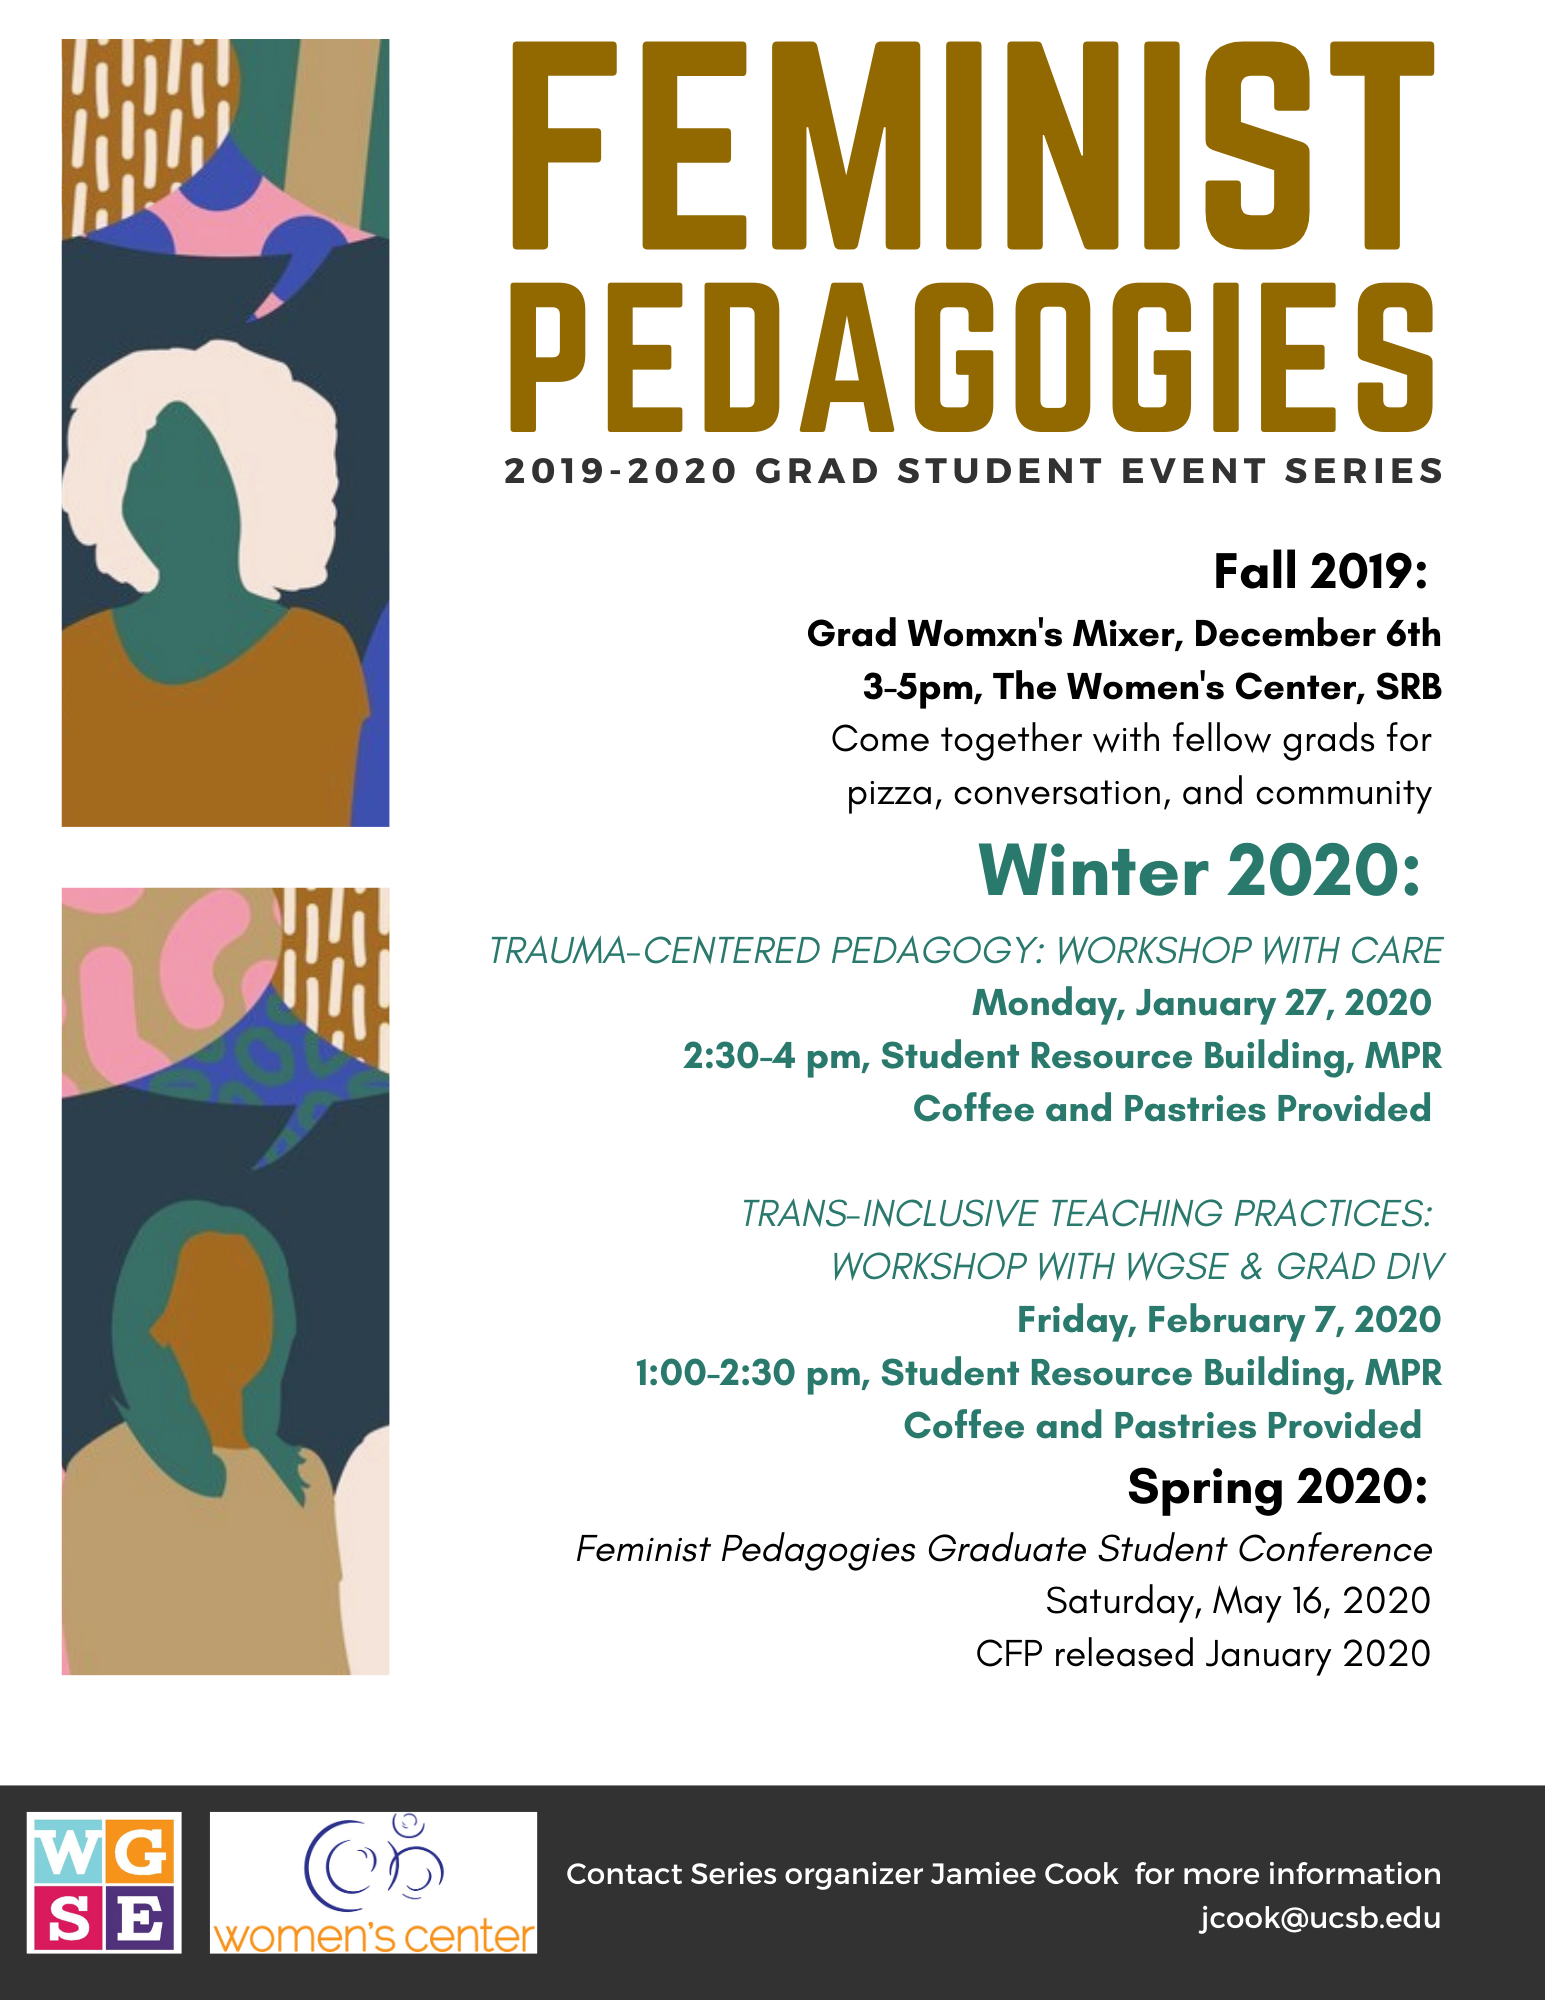 Feminist Pedagogies Series Flier Winter 2020 Events 1-6